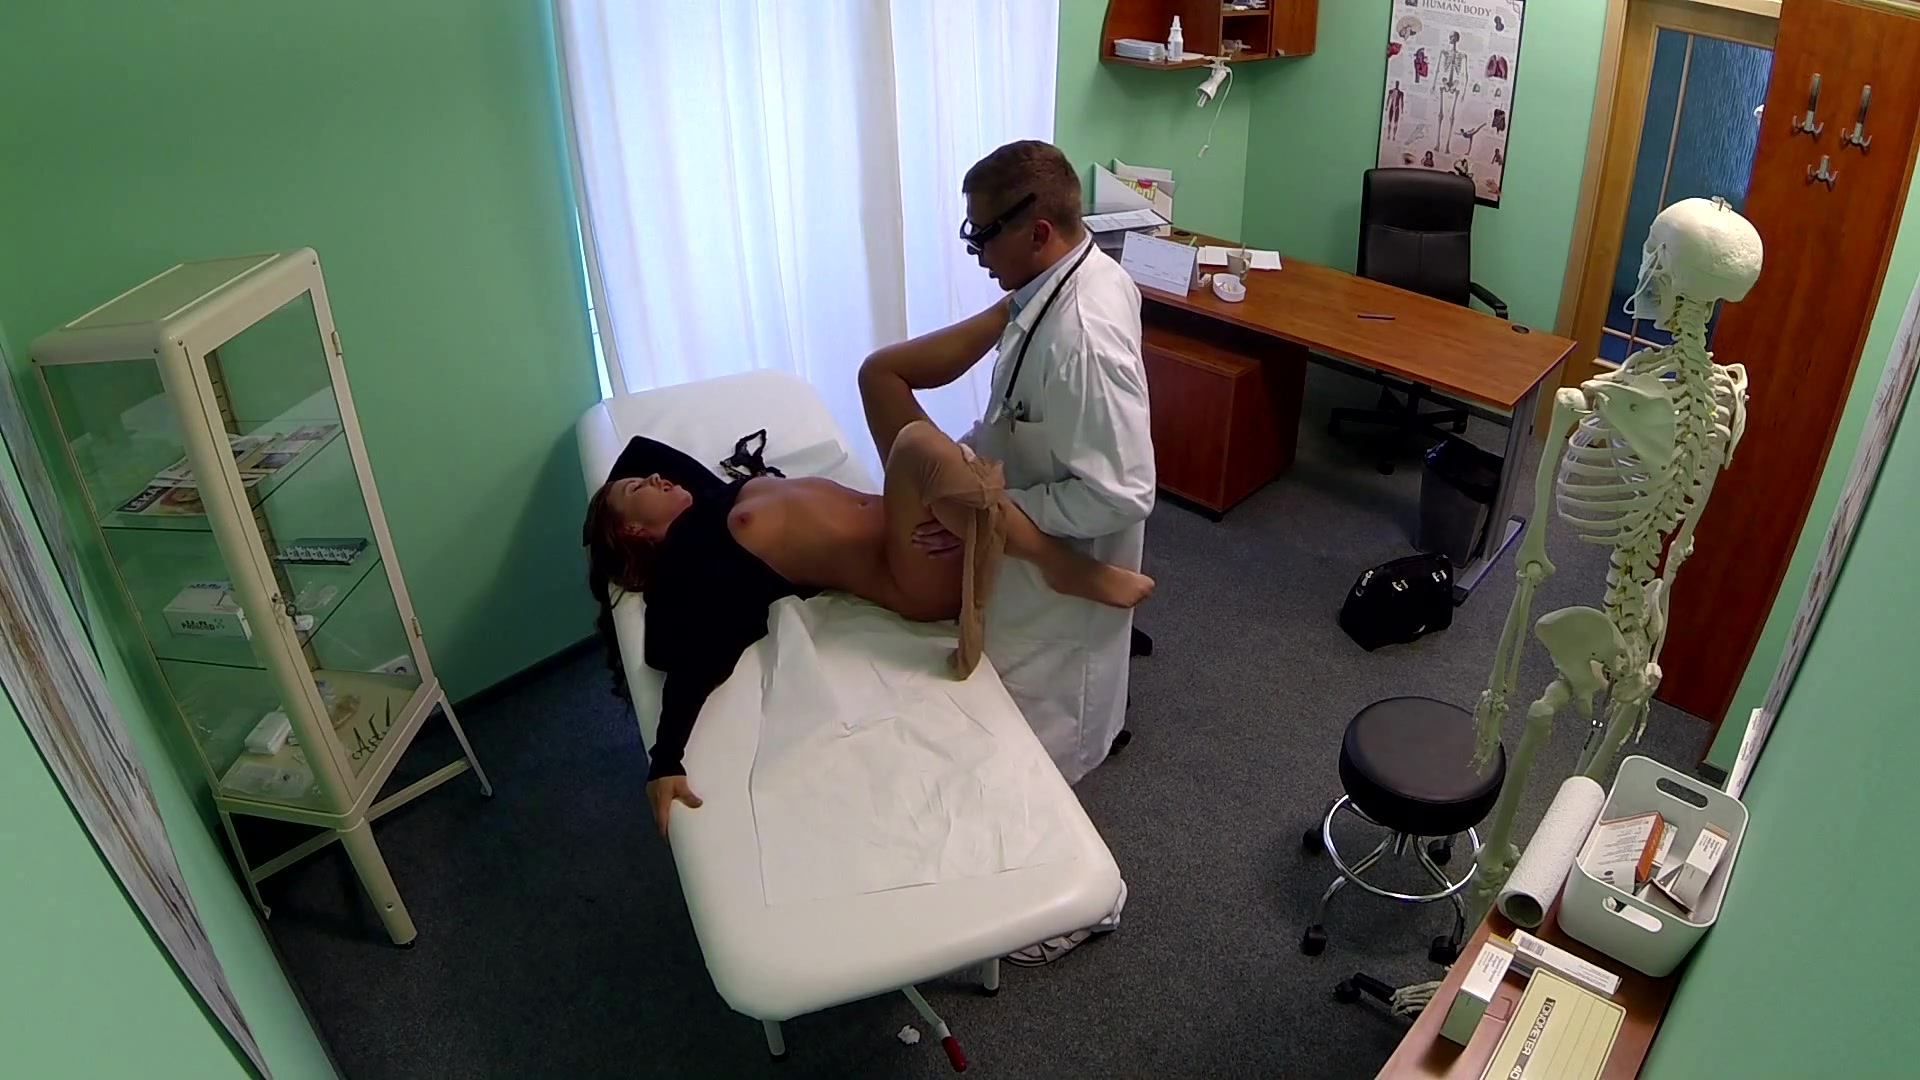 Cute Long Haired Girl Has Sex with the Doctor at His Office